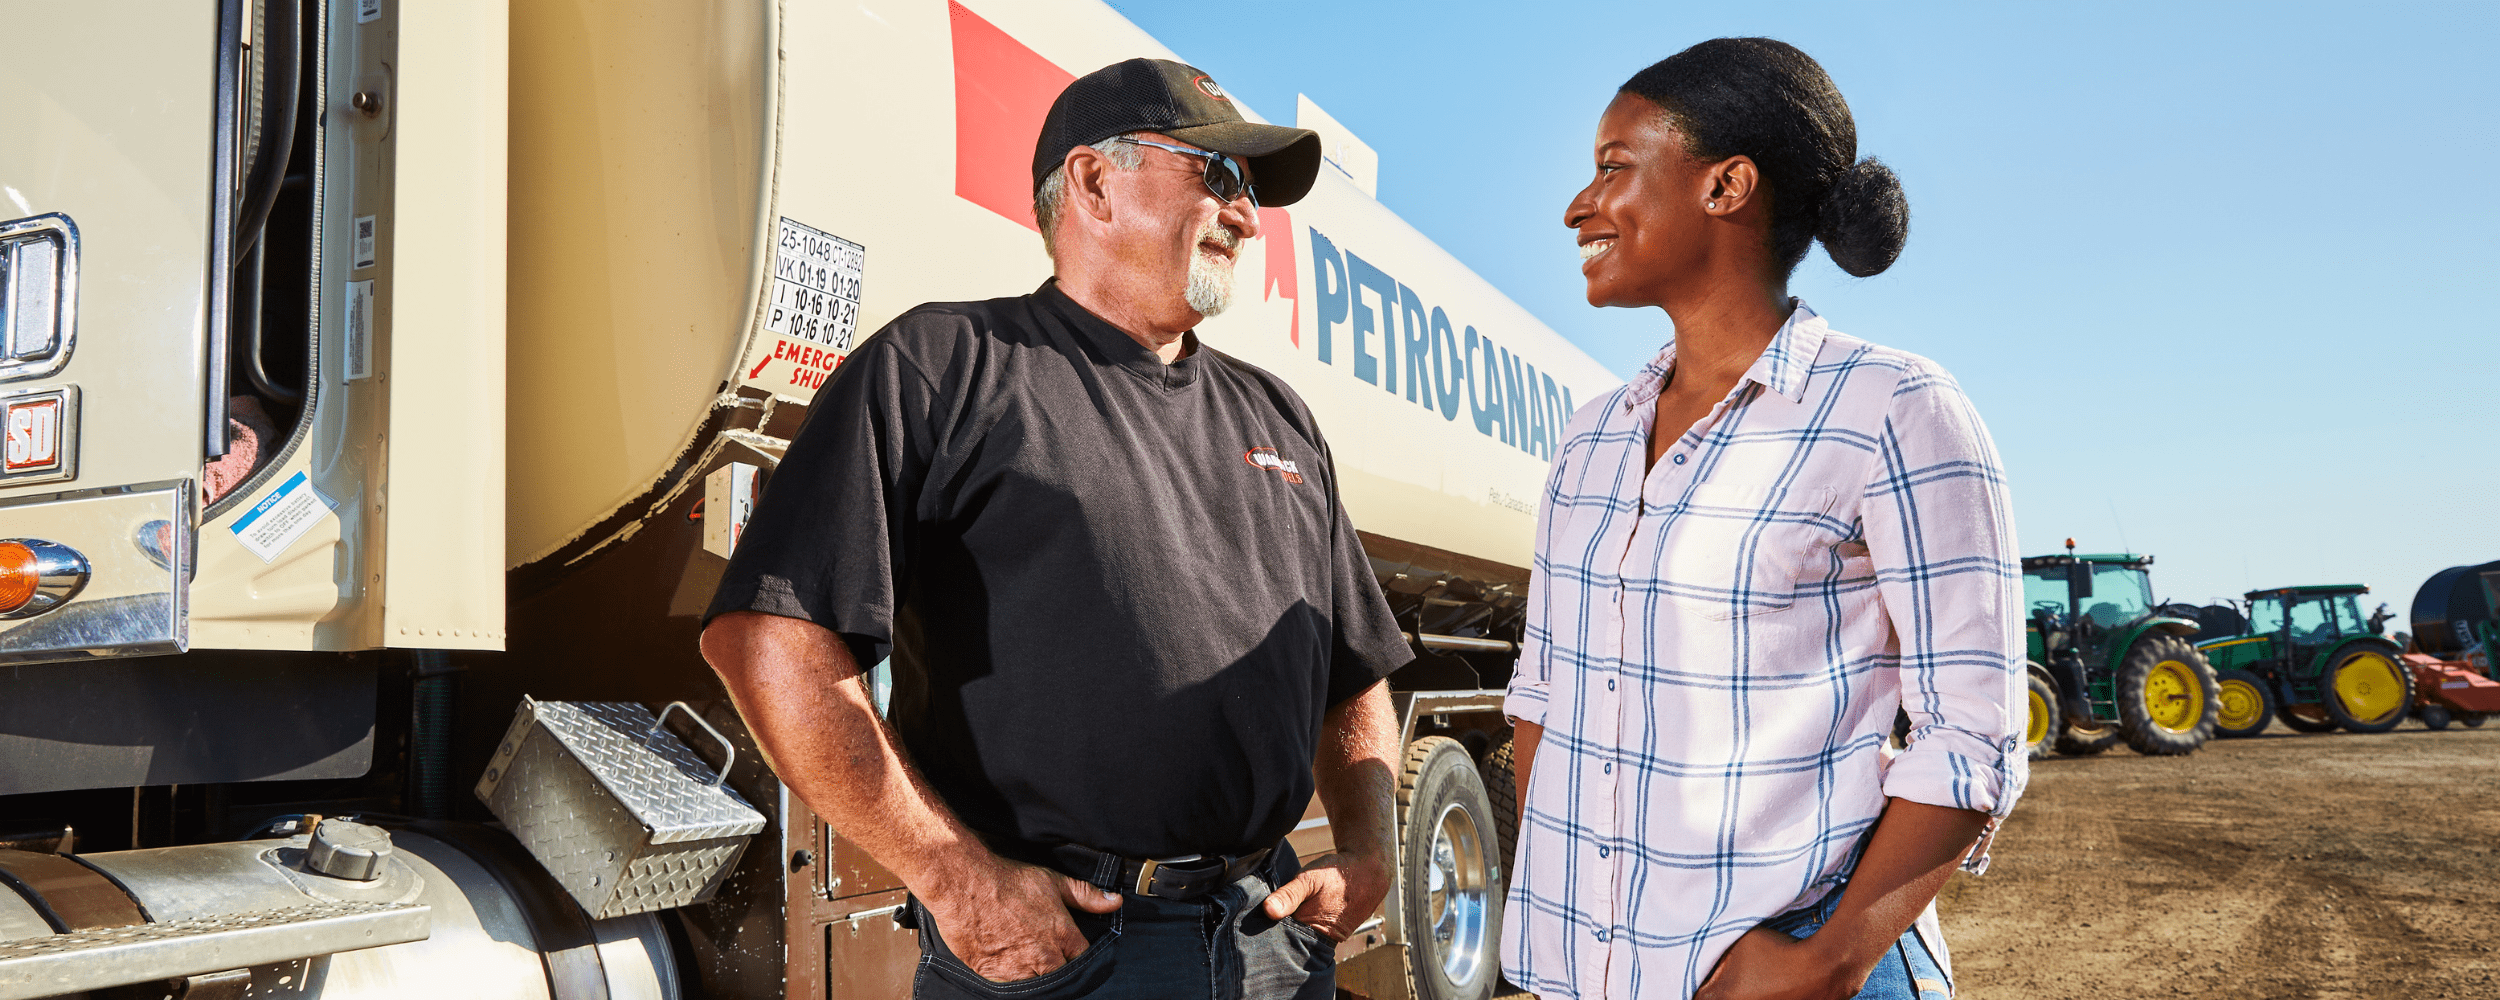 A picture of 2 truck drivers in front of a Petro-Canada truck